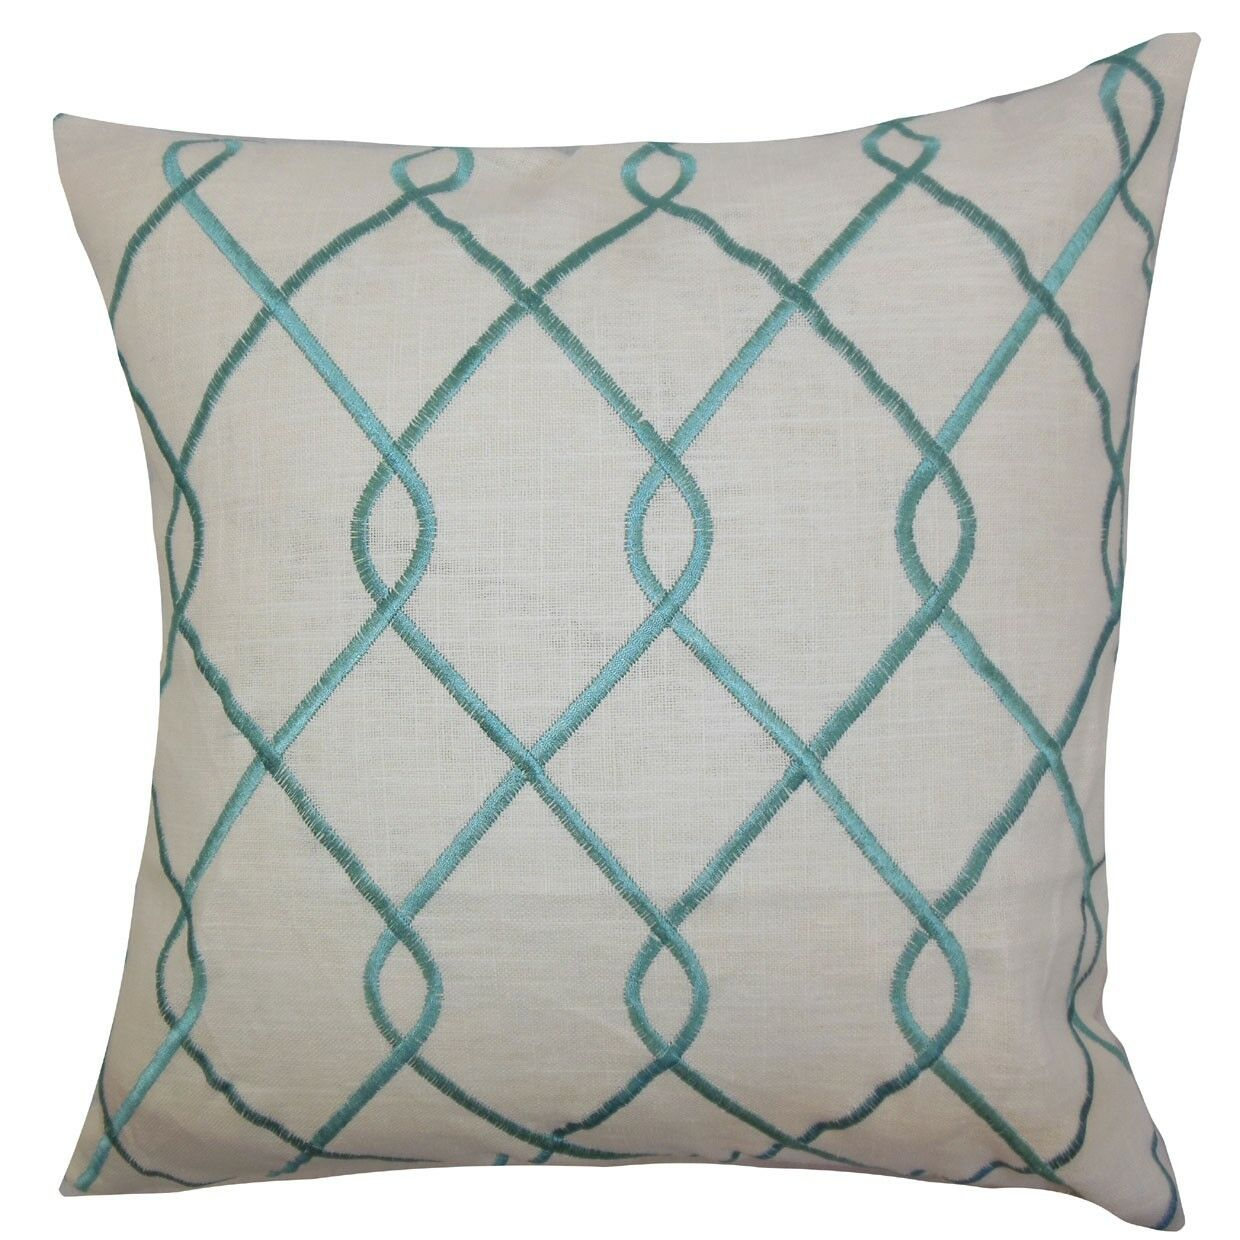 Jolo Geometric Linen Throw Pillow Color: Aqua Blue, Size: 20